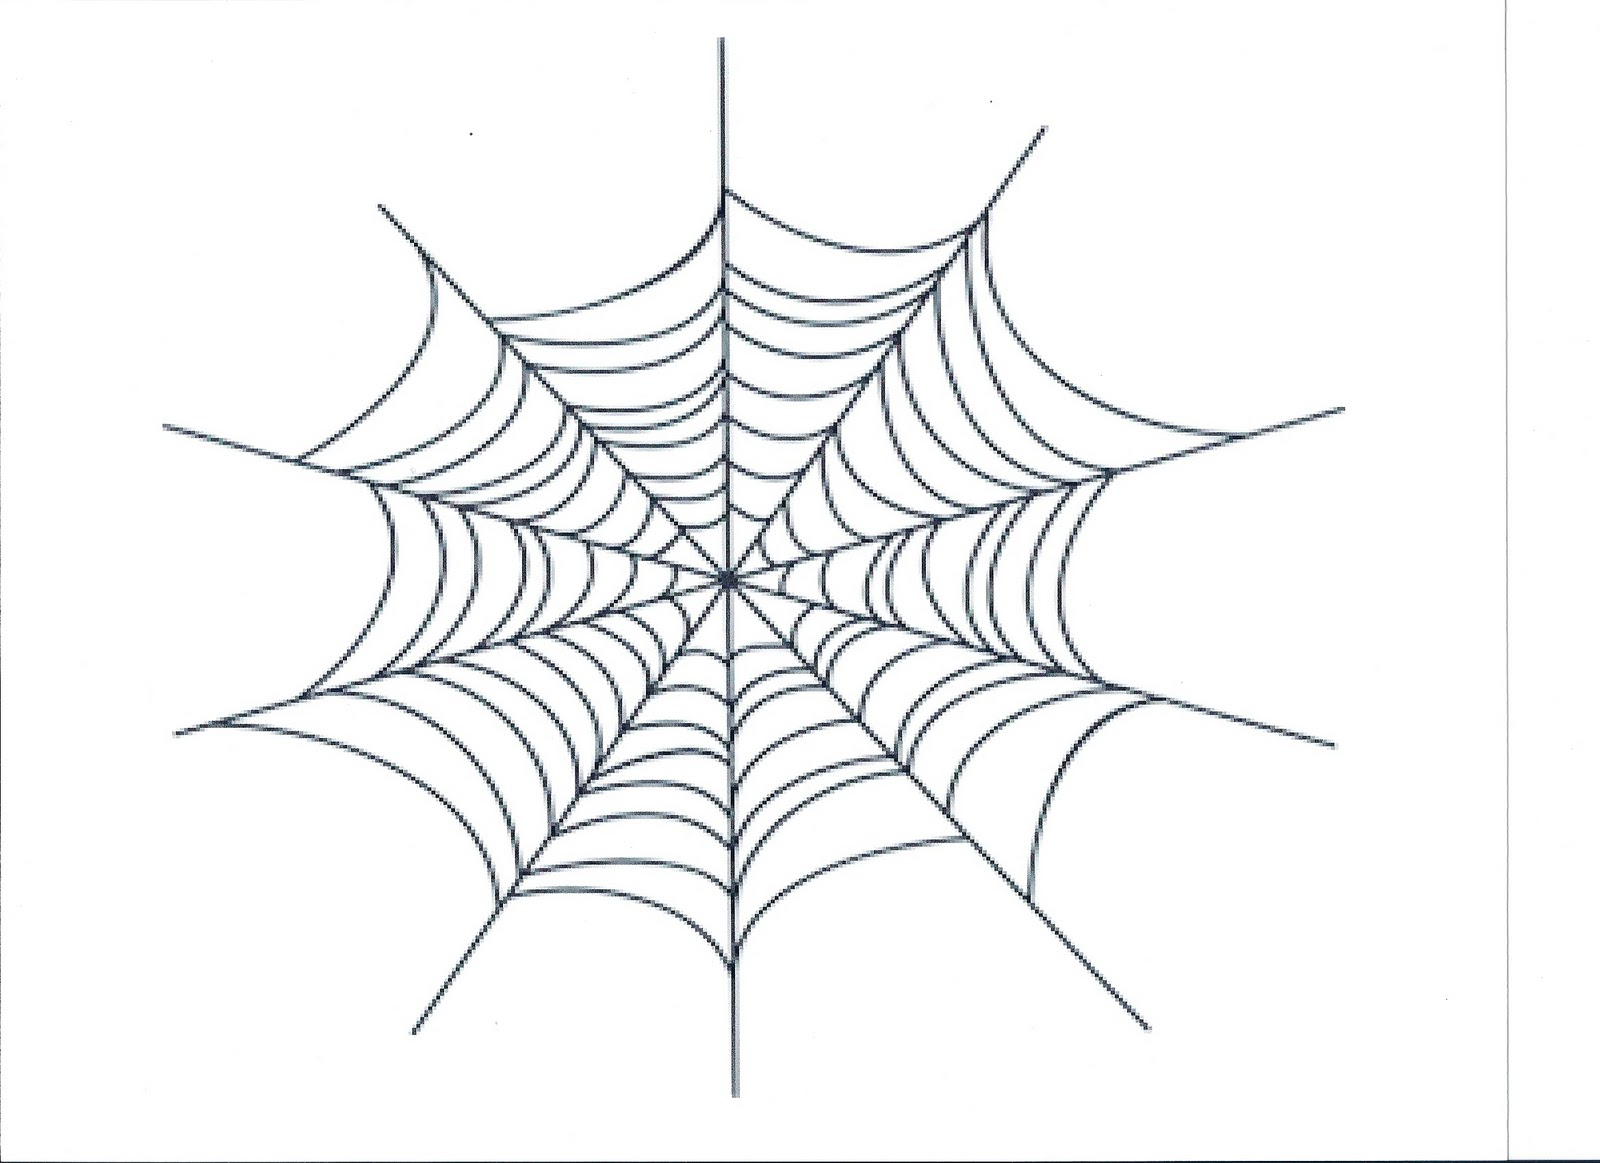 Spider in web drawing - photo#6